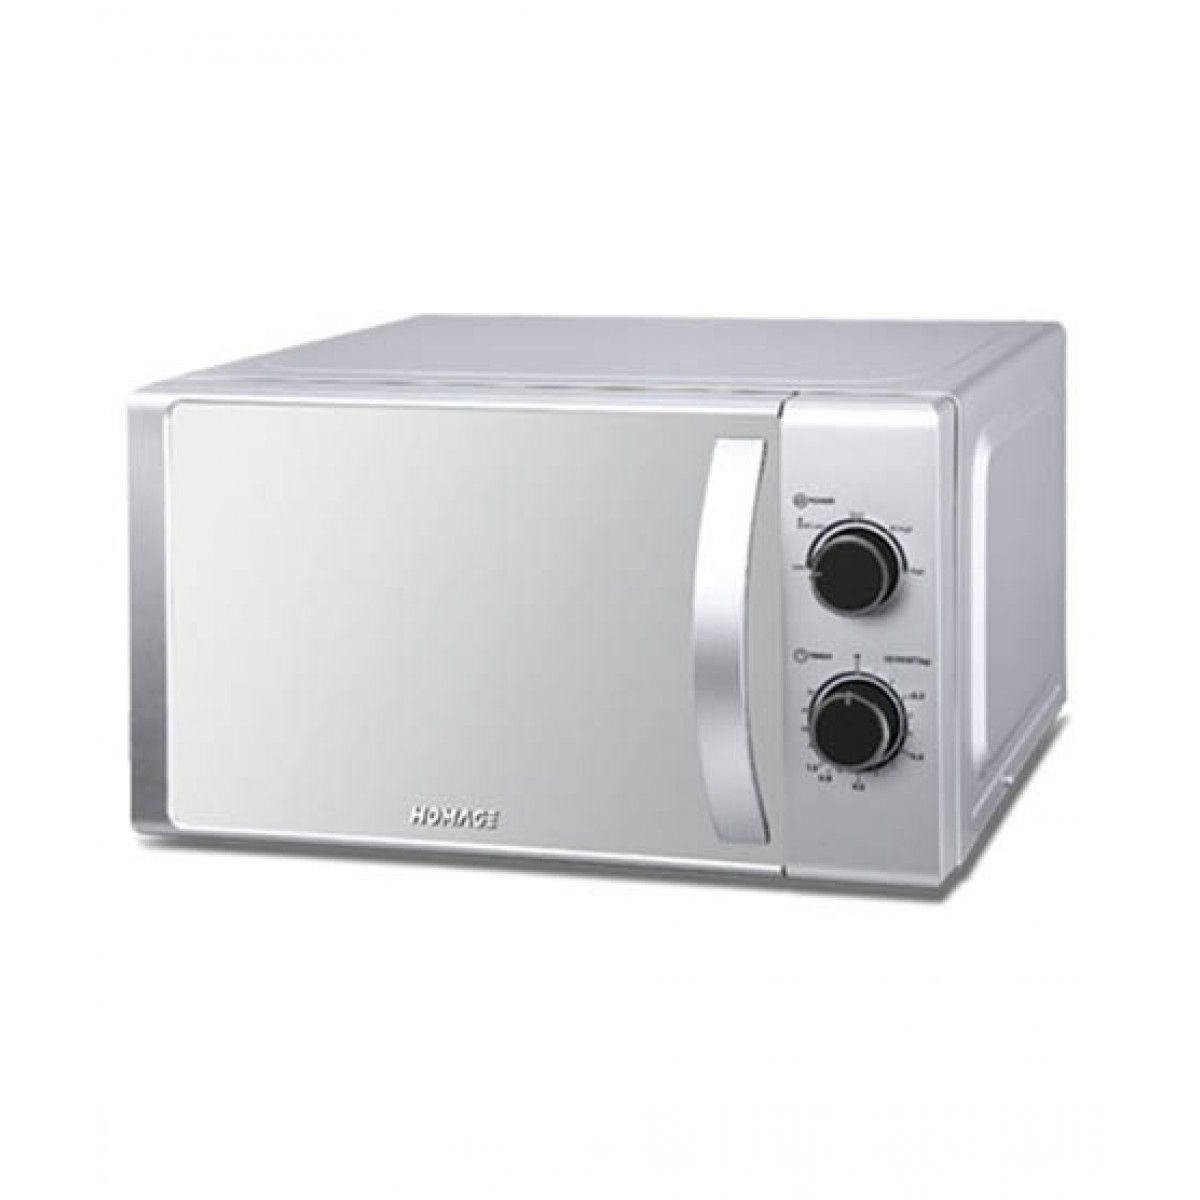 Homage HMSO-2010S Microwave Oven 20ltr